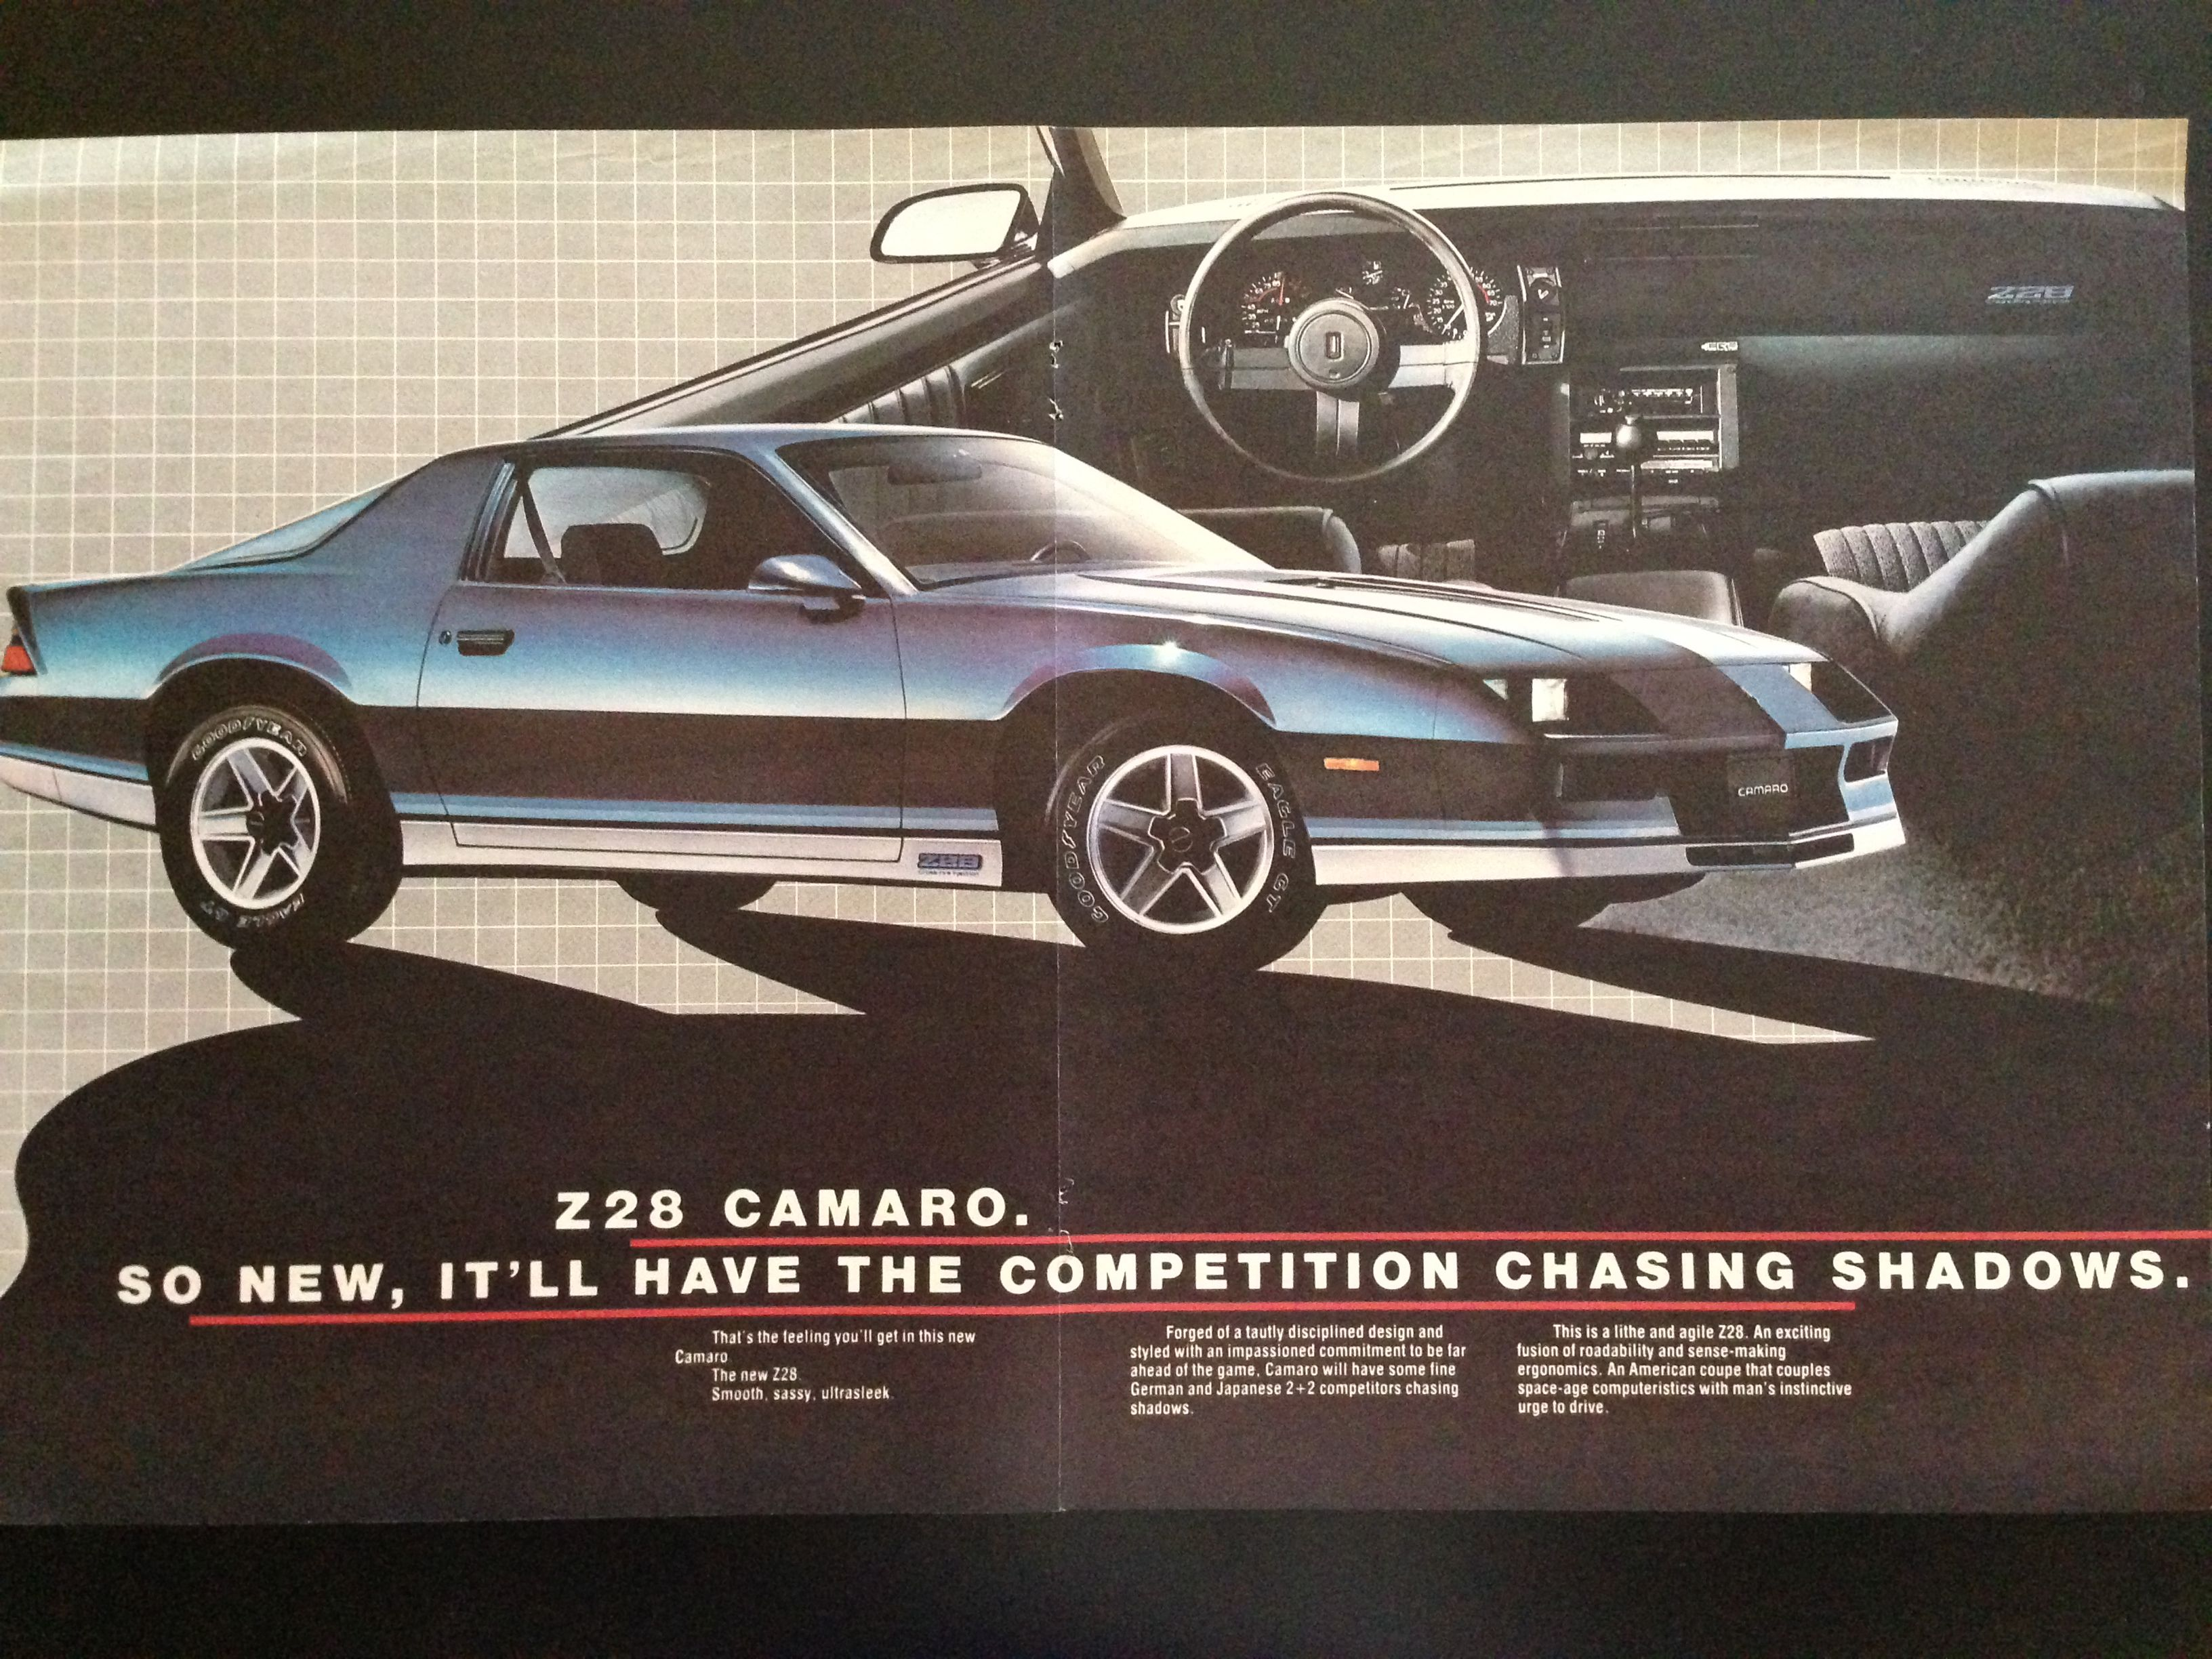 1982 Chevy Camaro ad#3 (blue) | Vintage Chevy Vehicle Ads